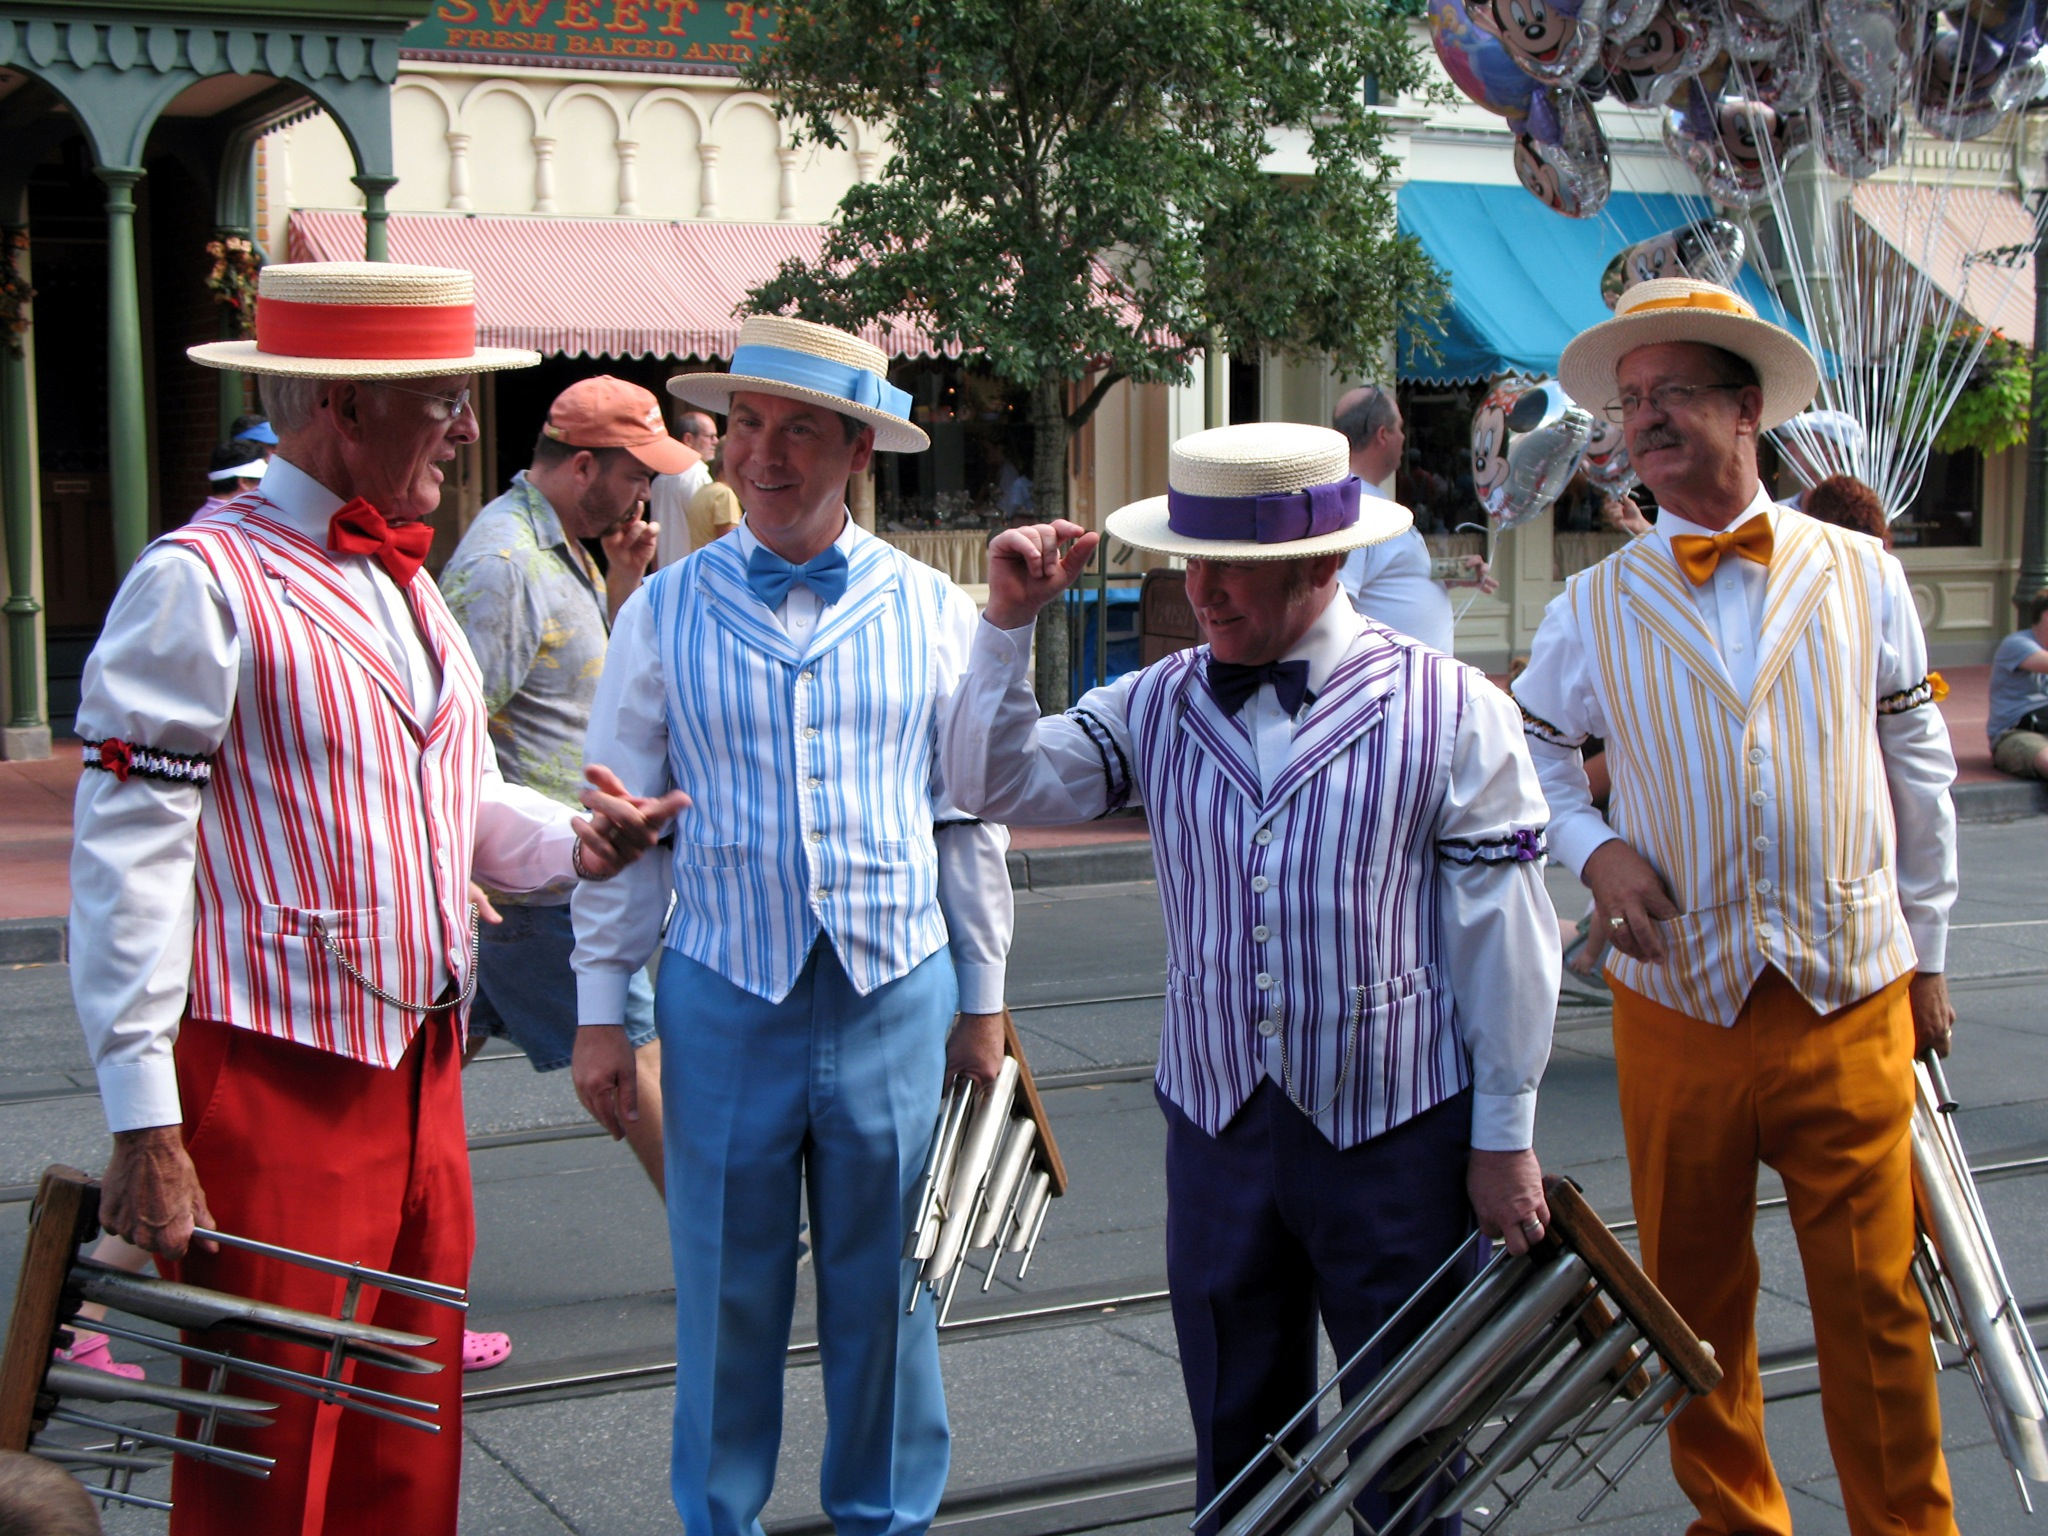 The Dapper Dans - Wikipedia